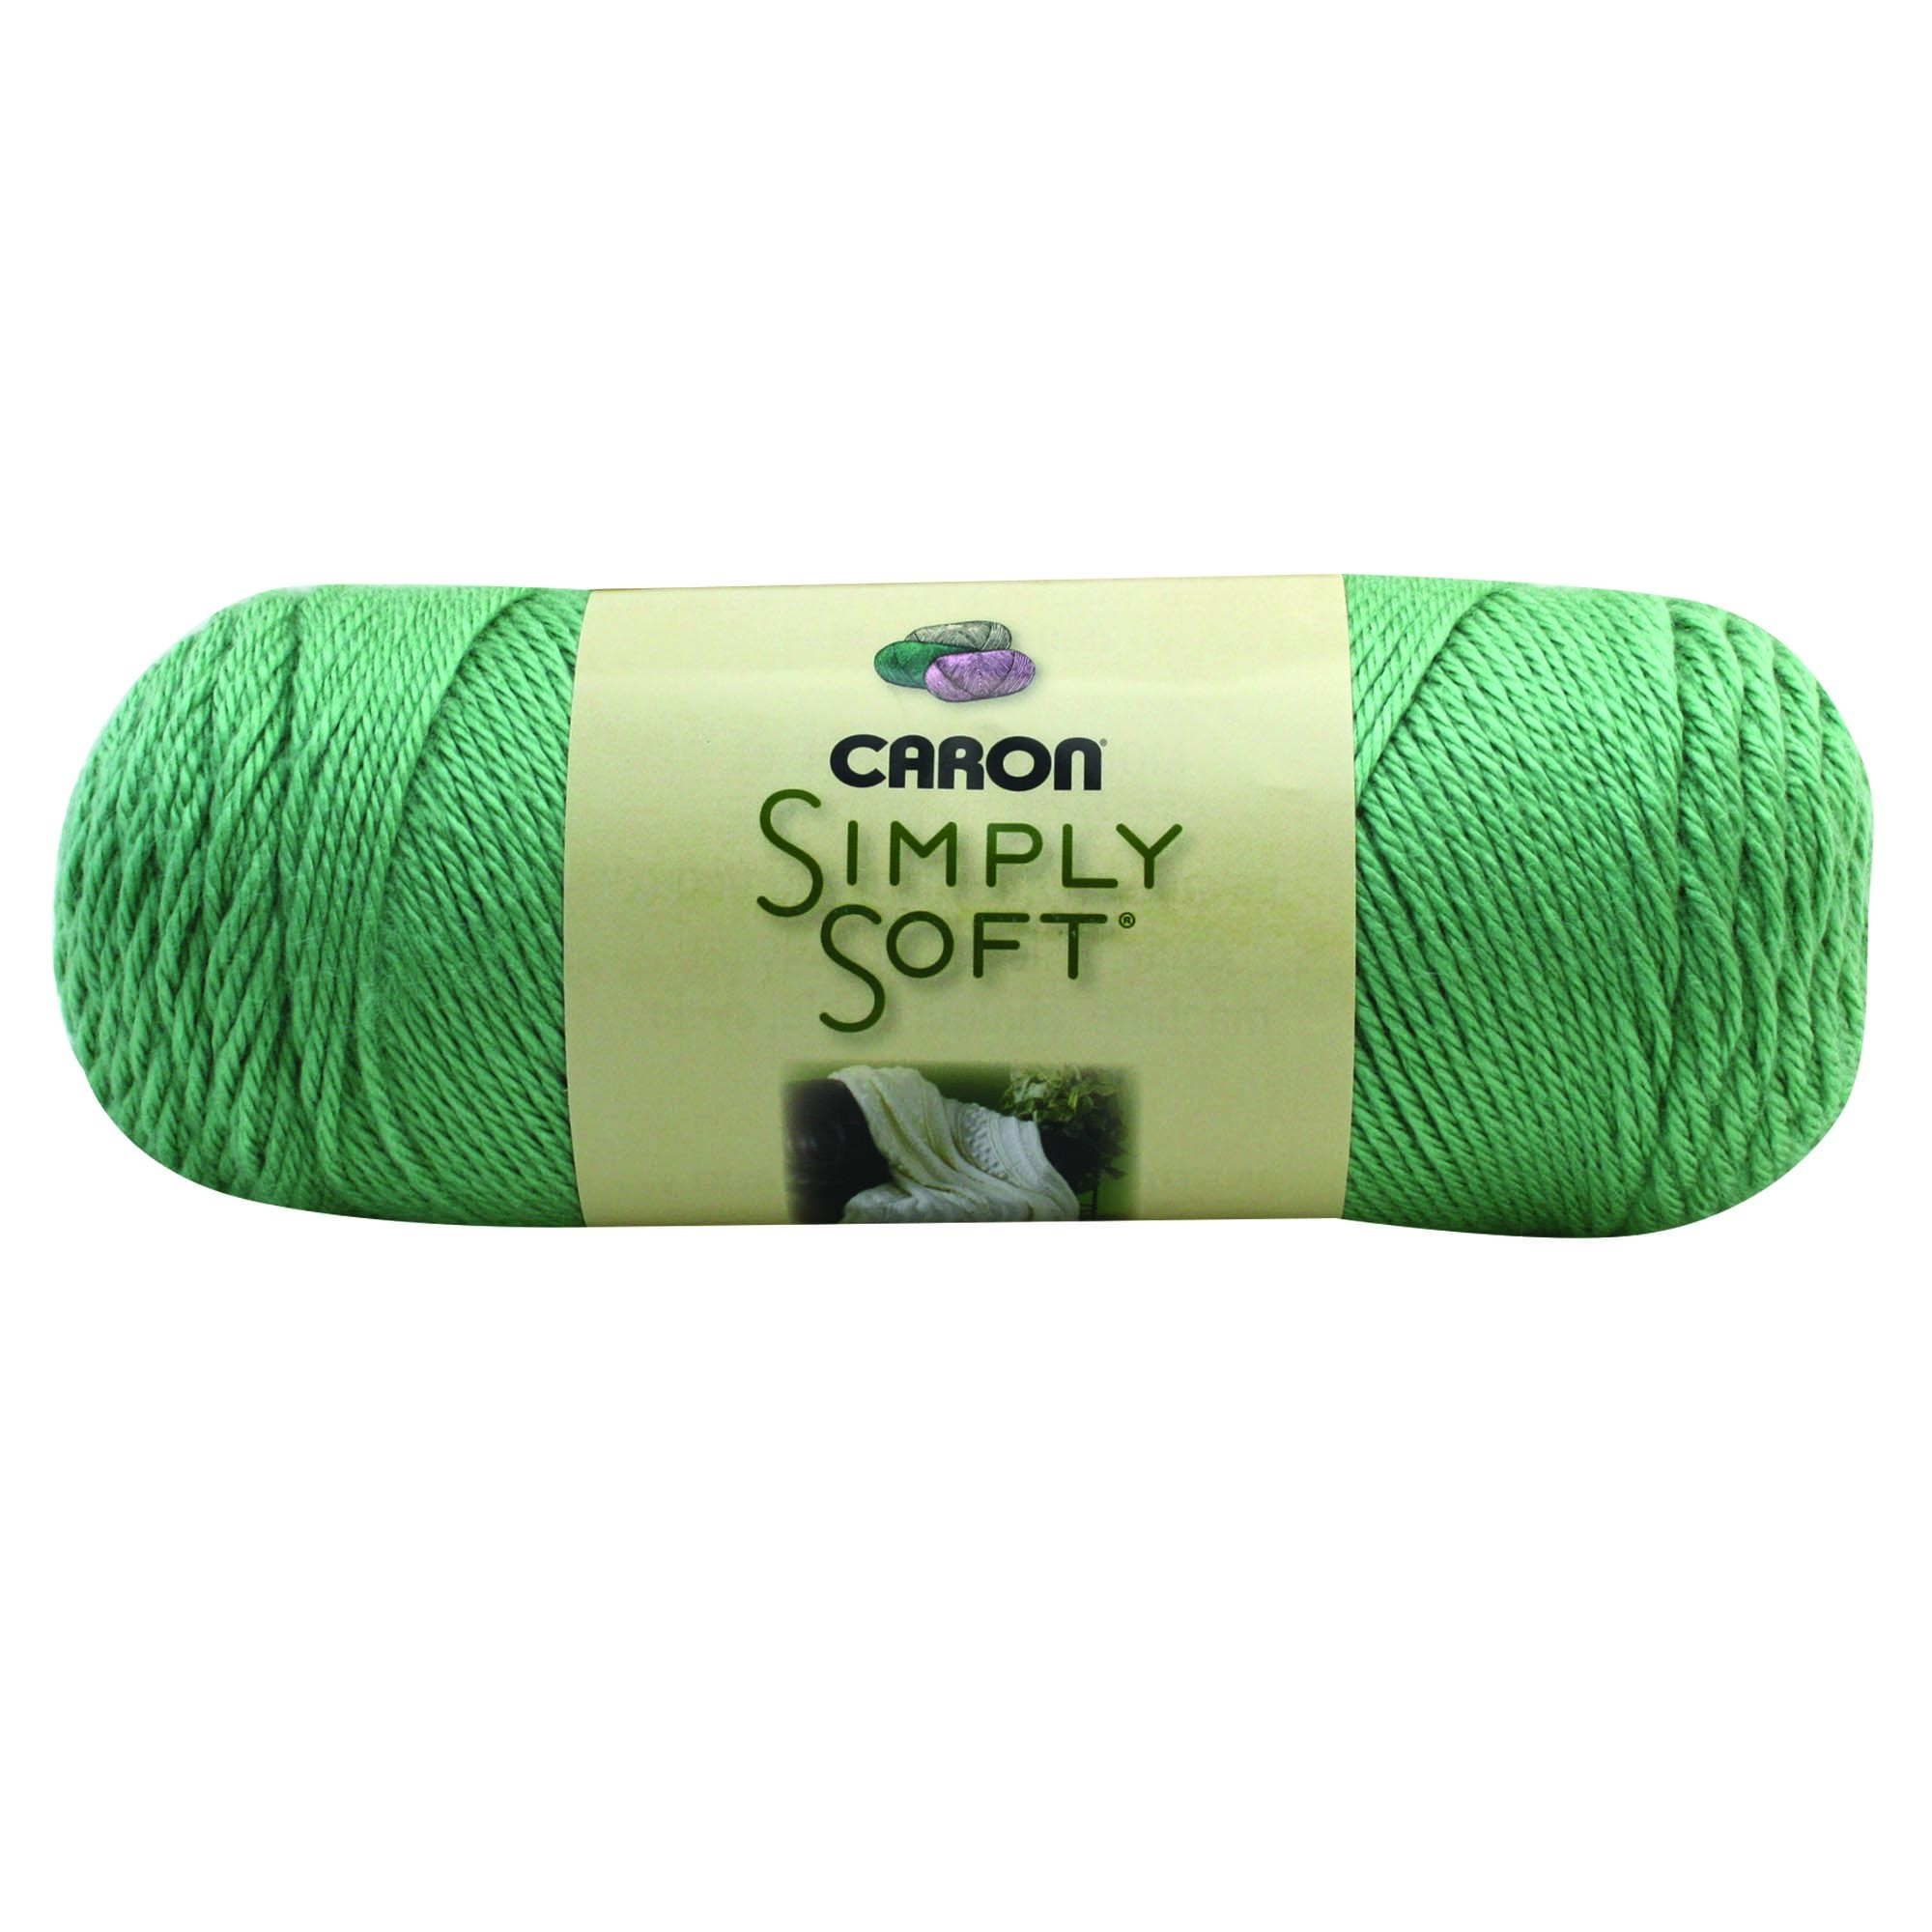 Caron Simply soft Best Of Caron Simply soft Aran Knitting Yarn 170g solids Of Amazing 46 Images Caron Simply soft